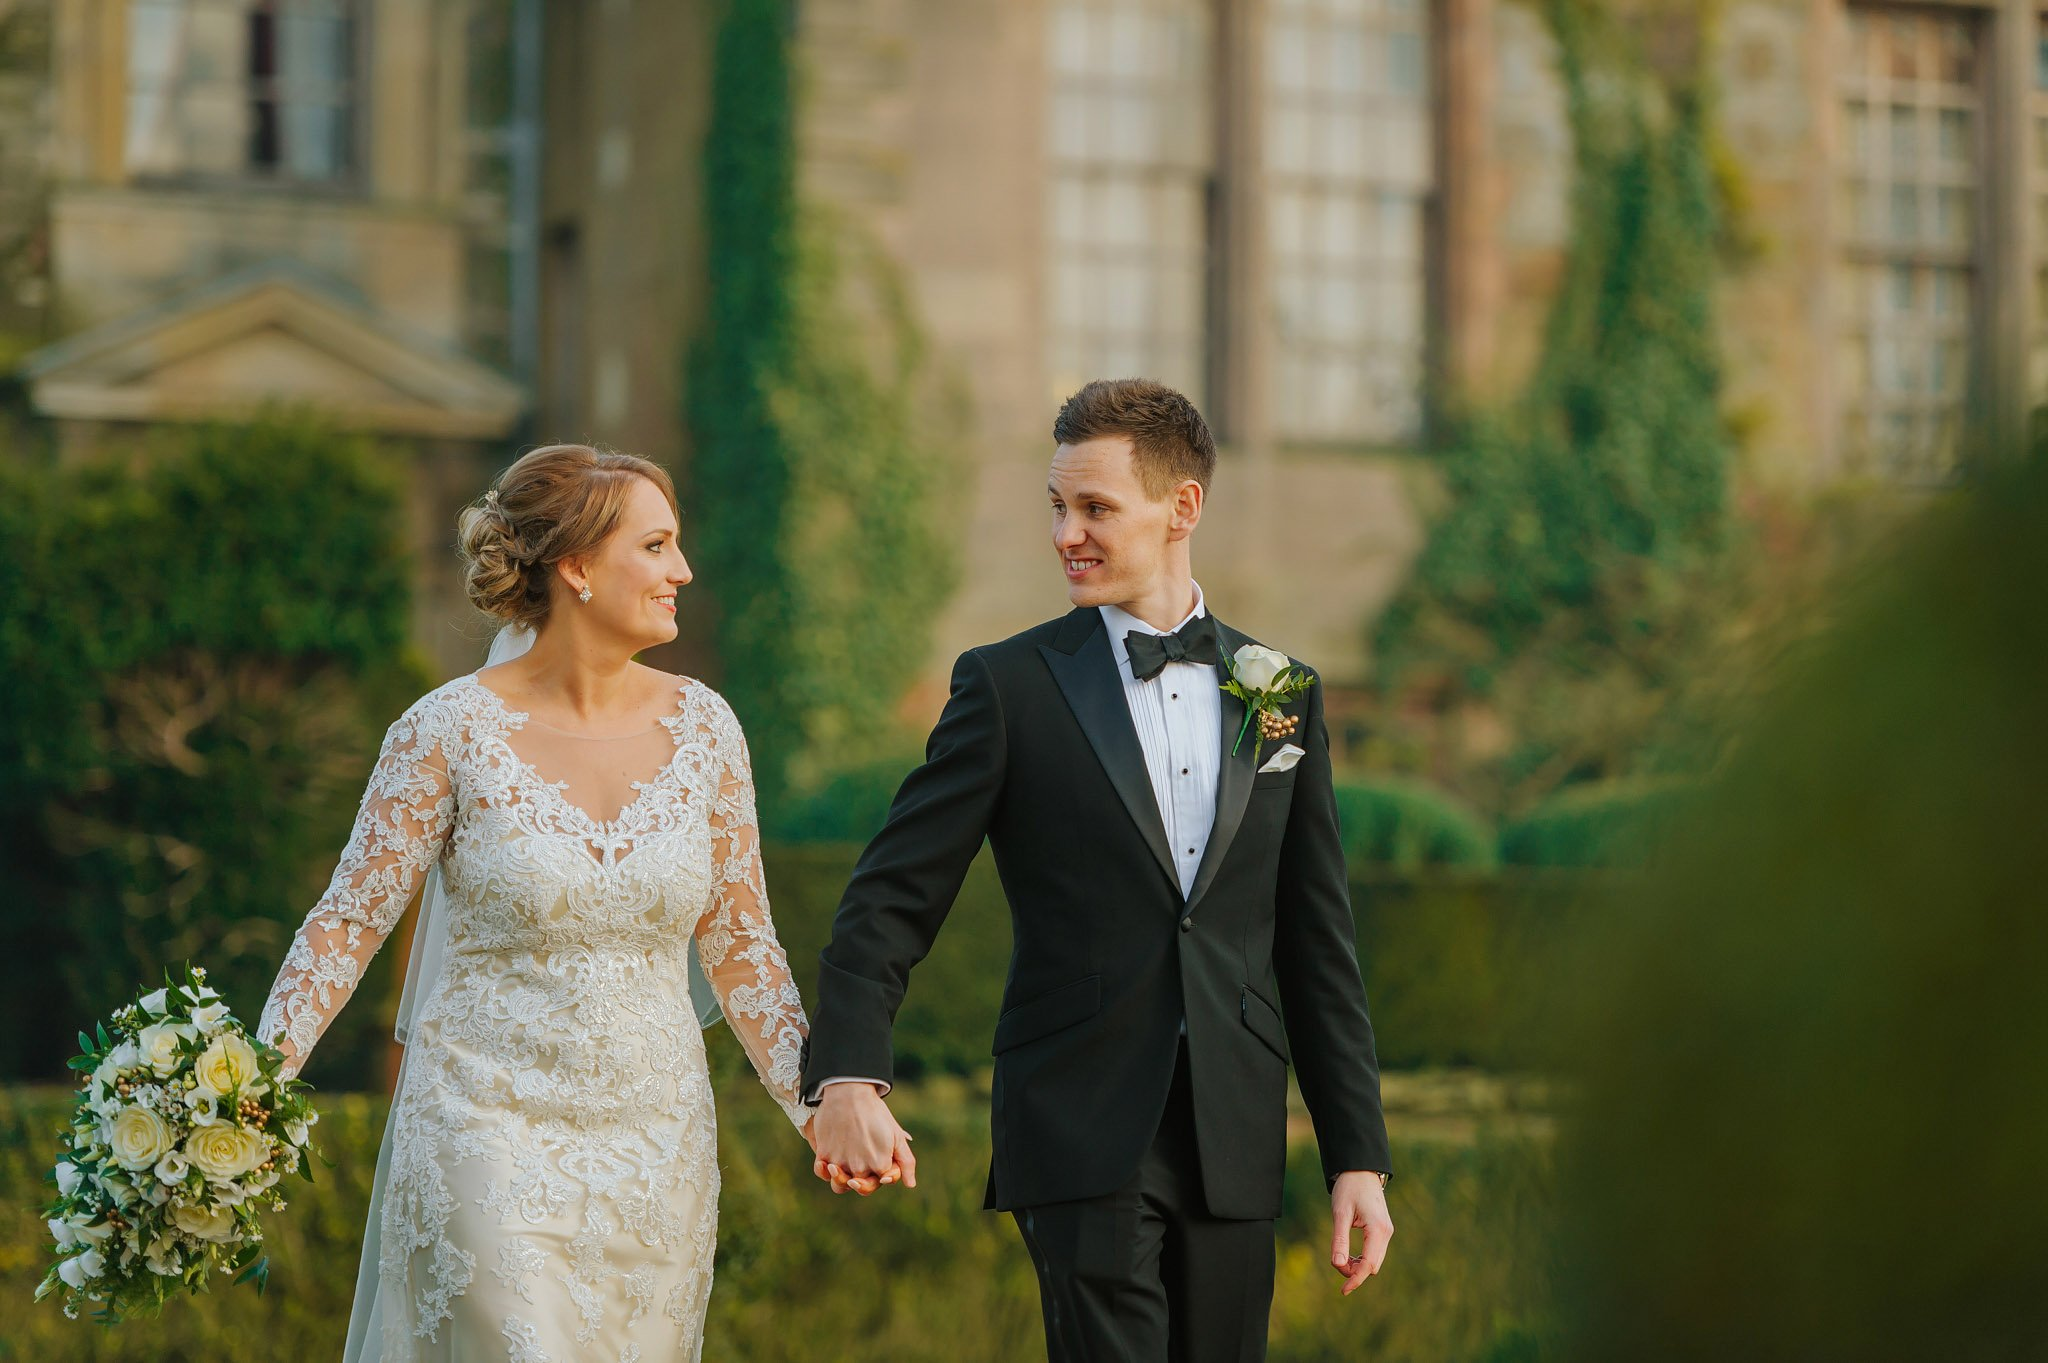 coombe abbey wedding coventry 85 - Coombe Abbey wedding in Coventry, Warwickshire - Sam + Matt